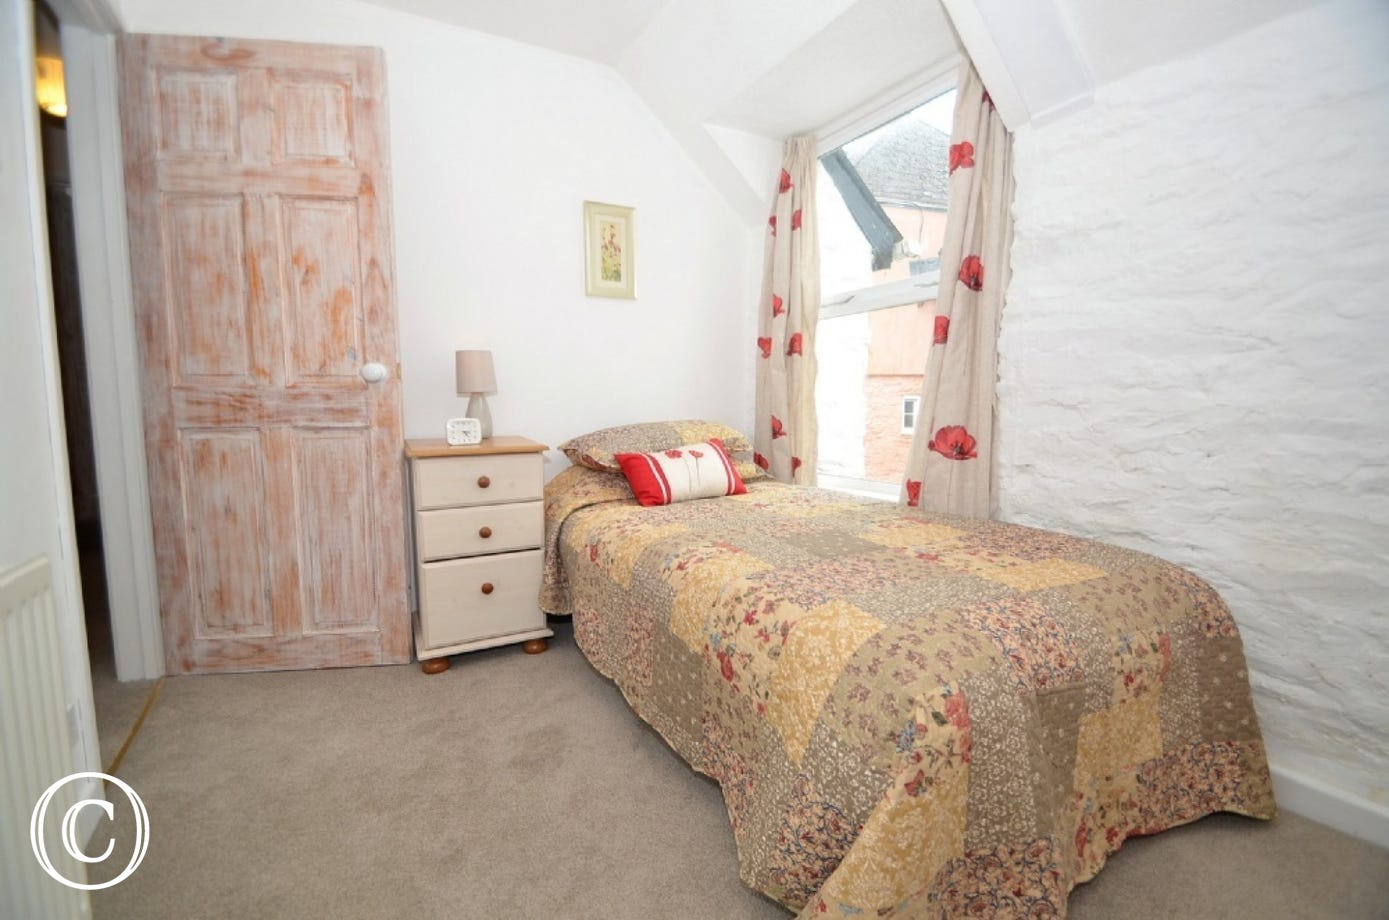 Bedroom 3: Single bed with slide out single bed underneath, wall mounted mirror, chest of drawers with a lamp.